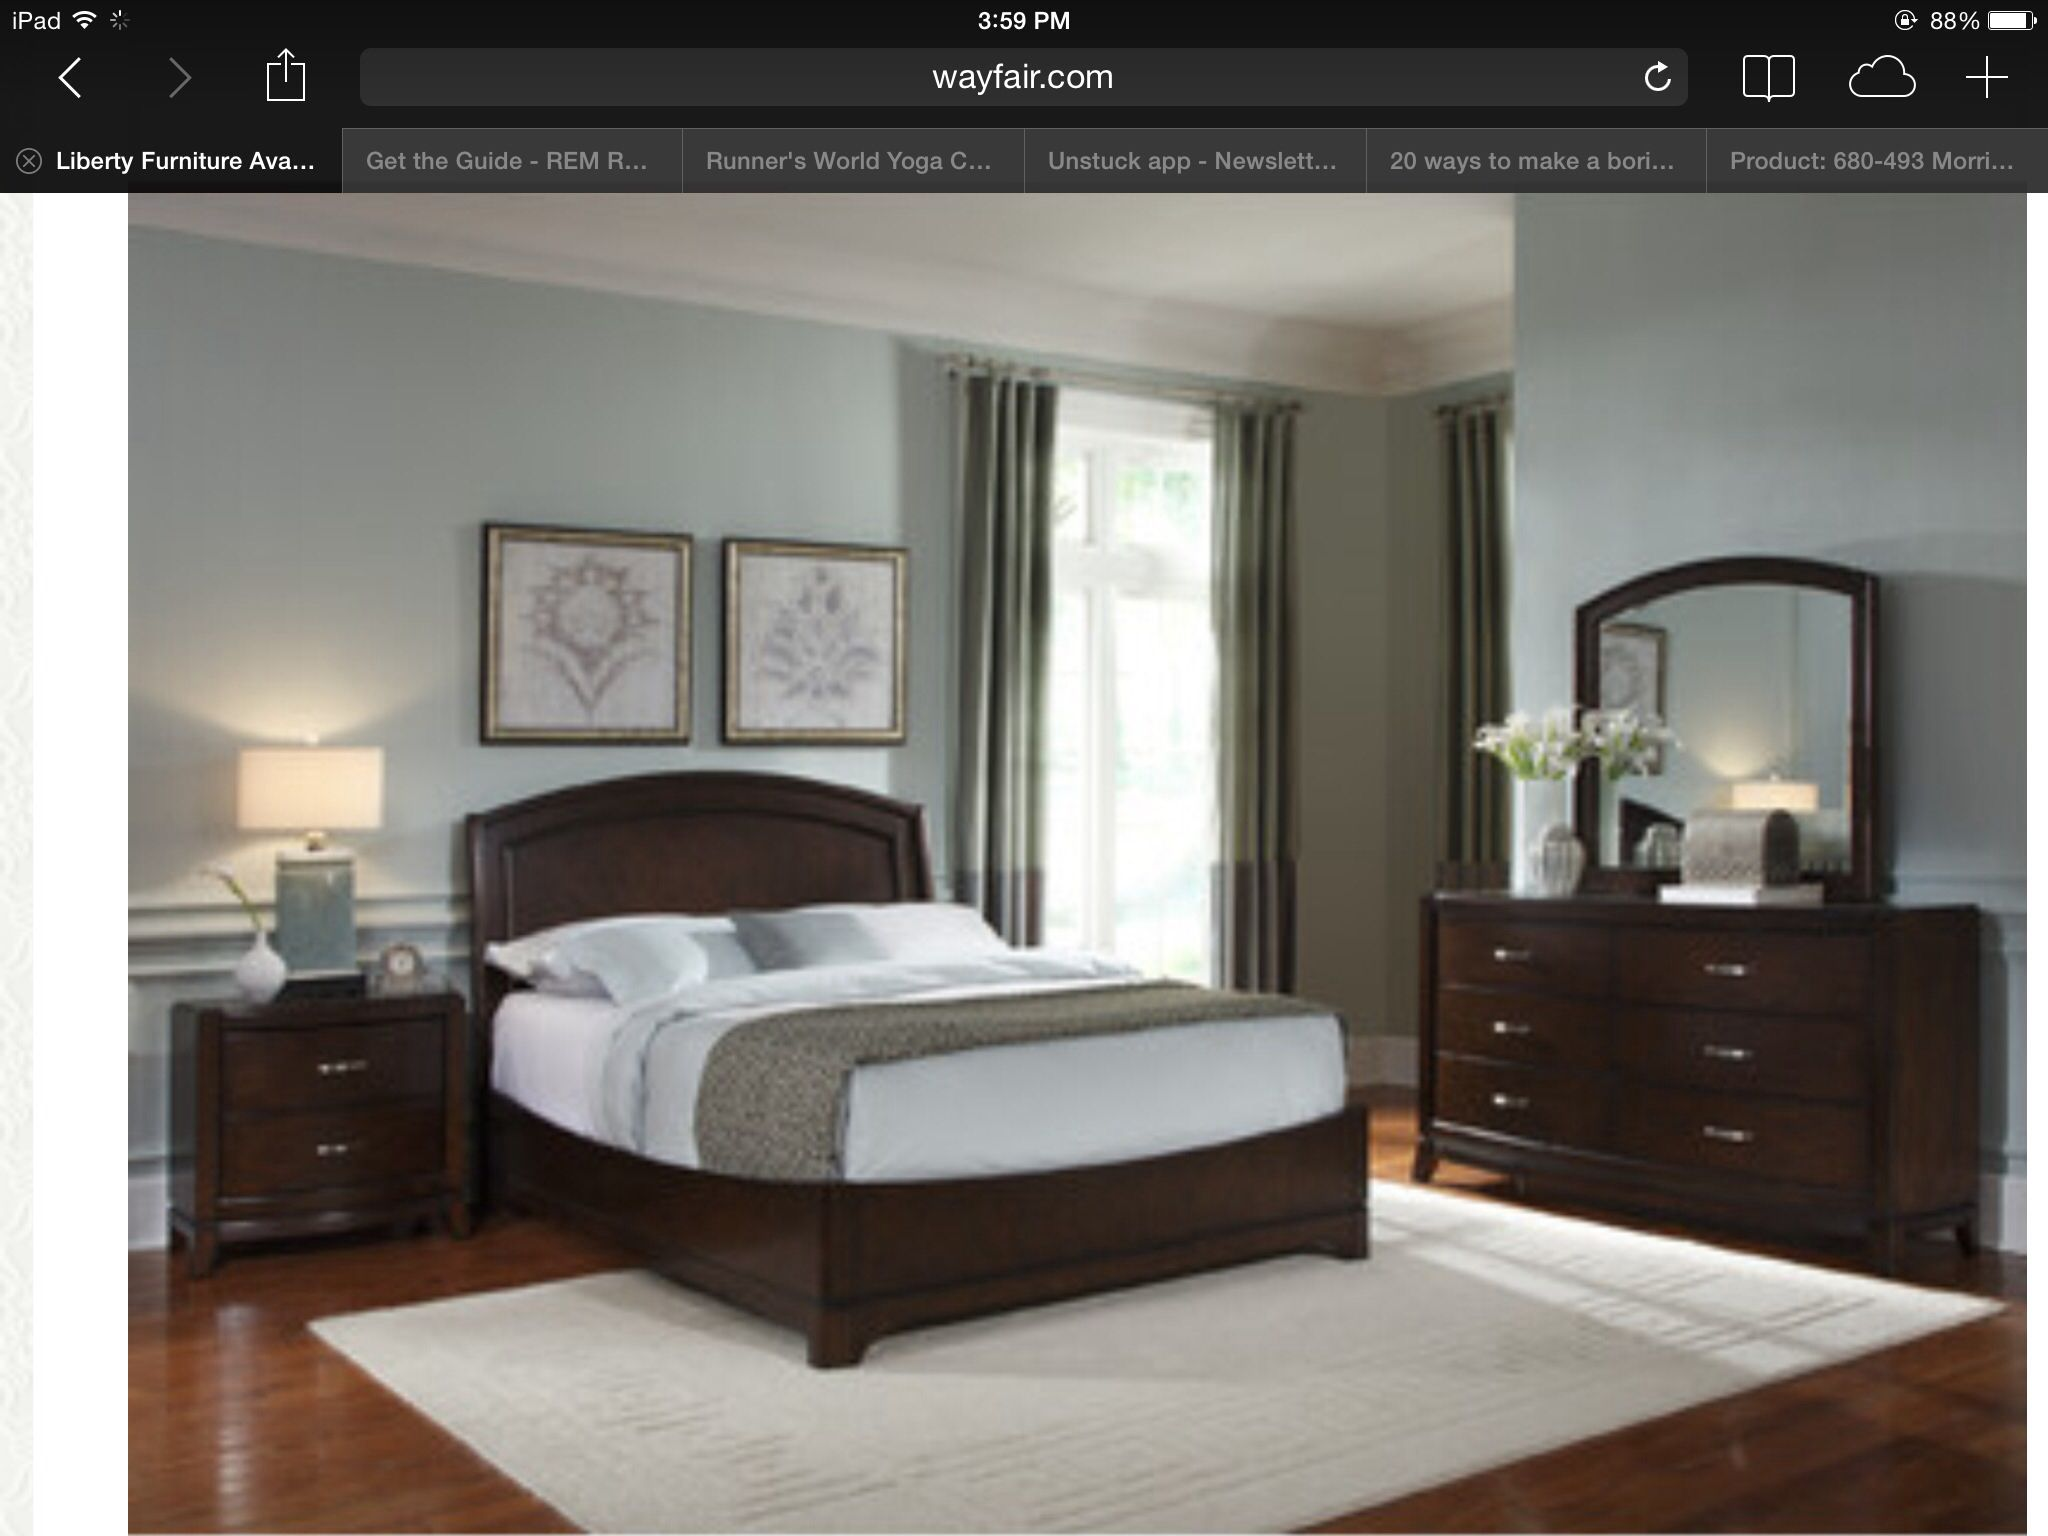 Avalon Bedroom Furniture On Wayfair Bedroom Pinterest